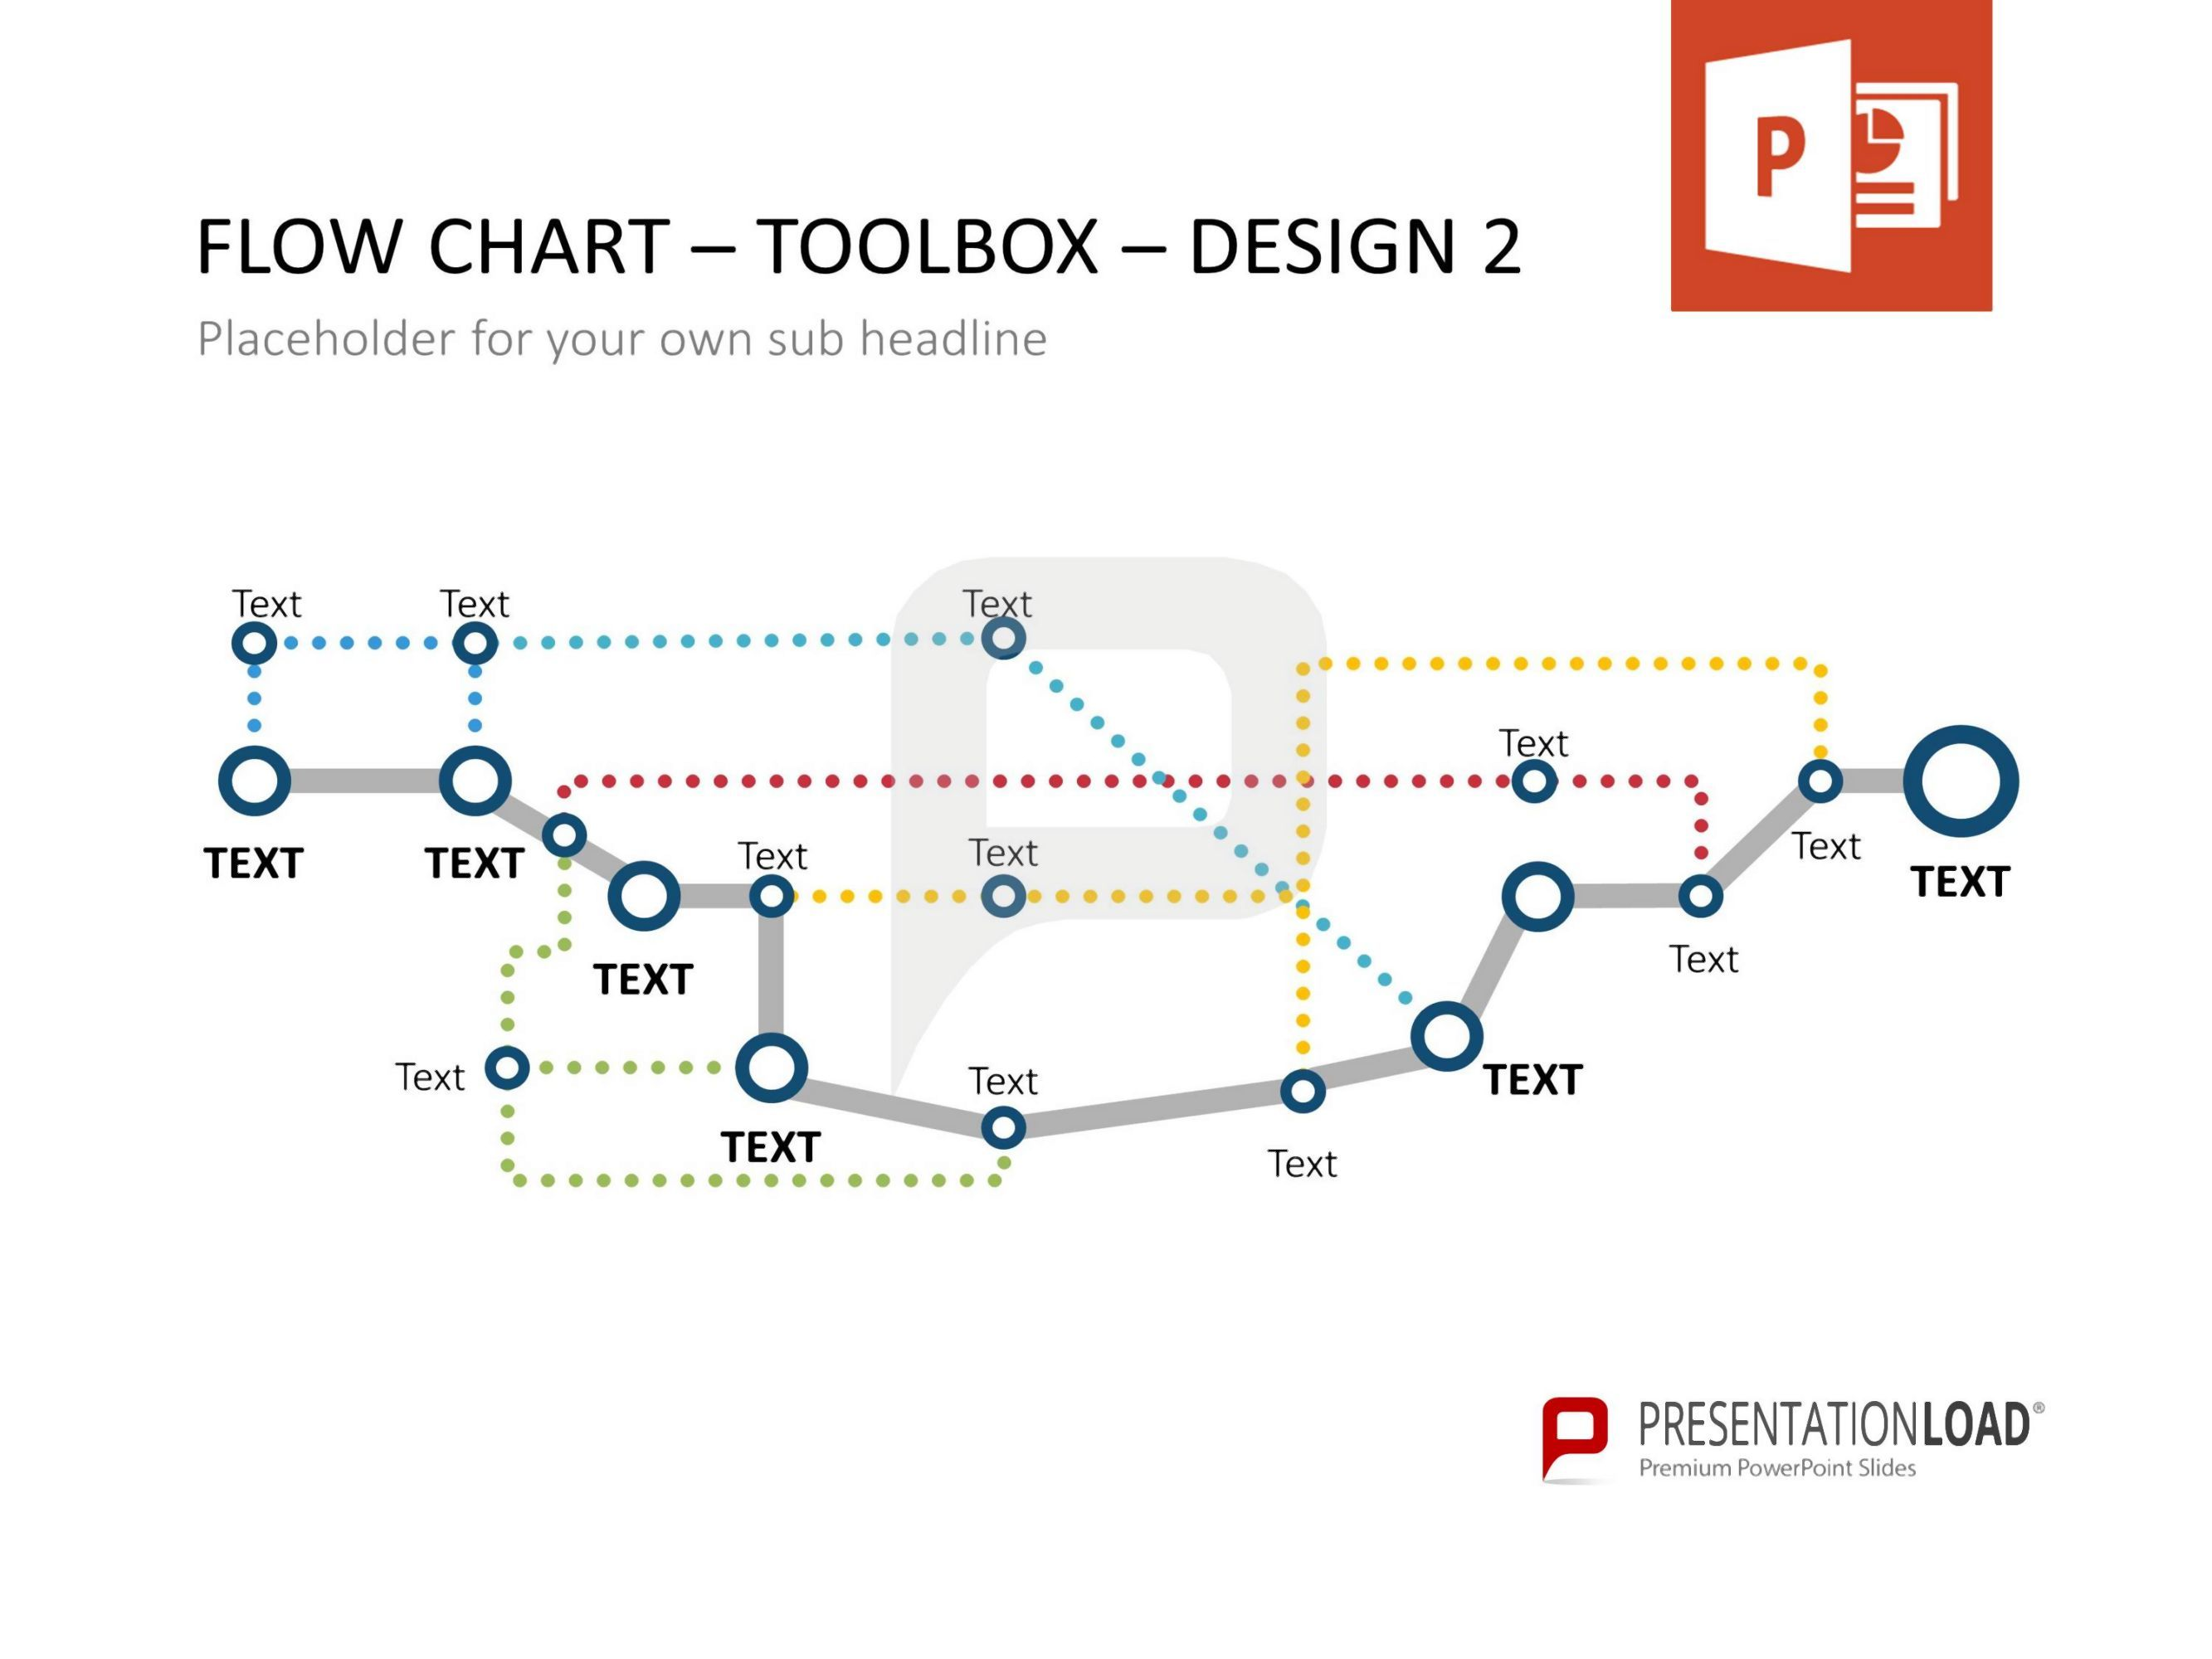 a97281c1c00576460e1ddd0ba0cfe197 our new flow chart toolbox enables you to either use modern pre